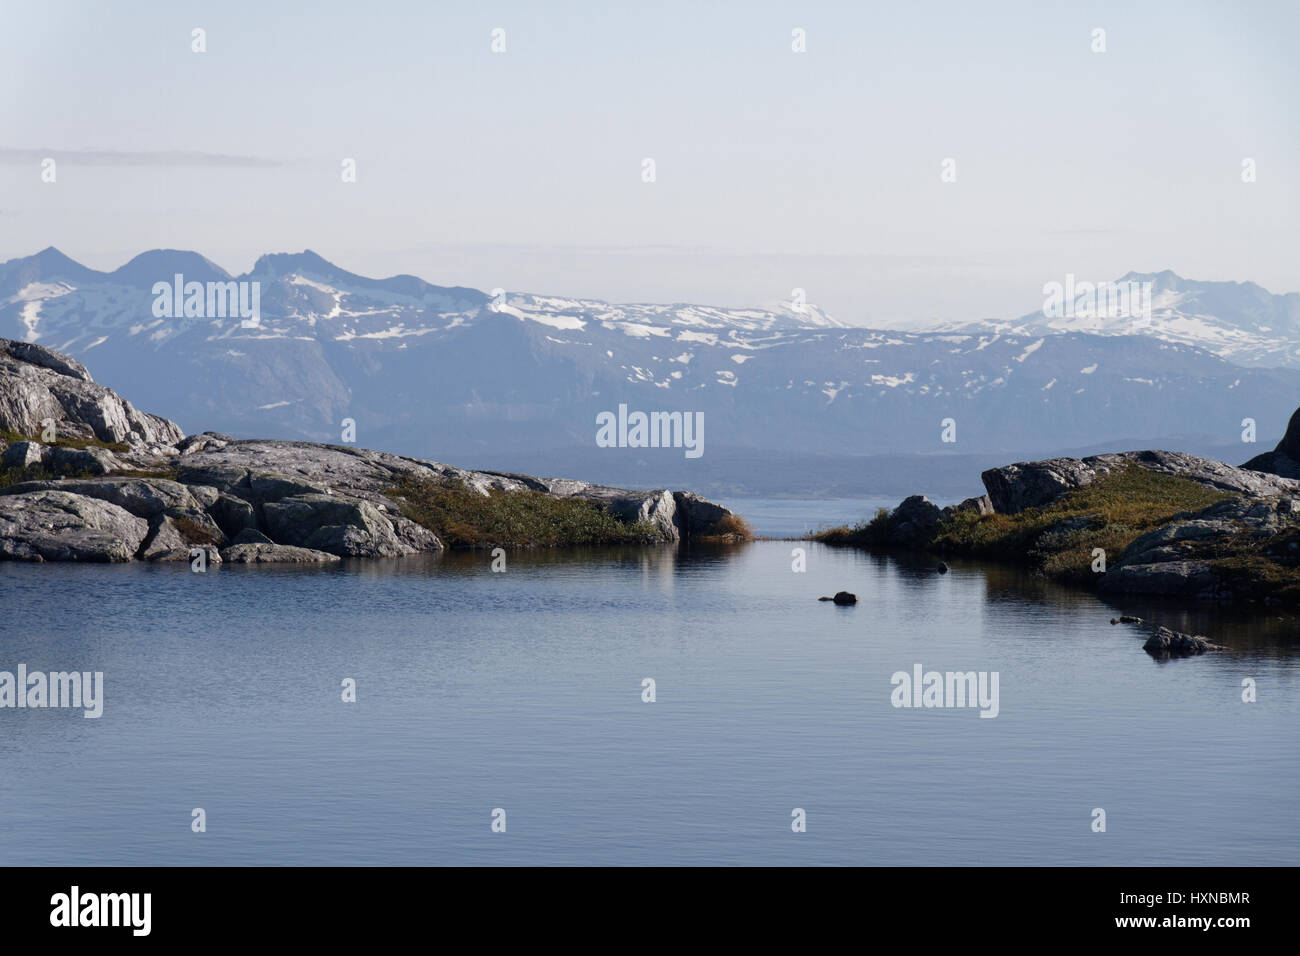 Two water levels - lake above Bodø and the sea, near Steigtind - Stock Image